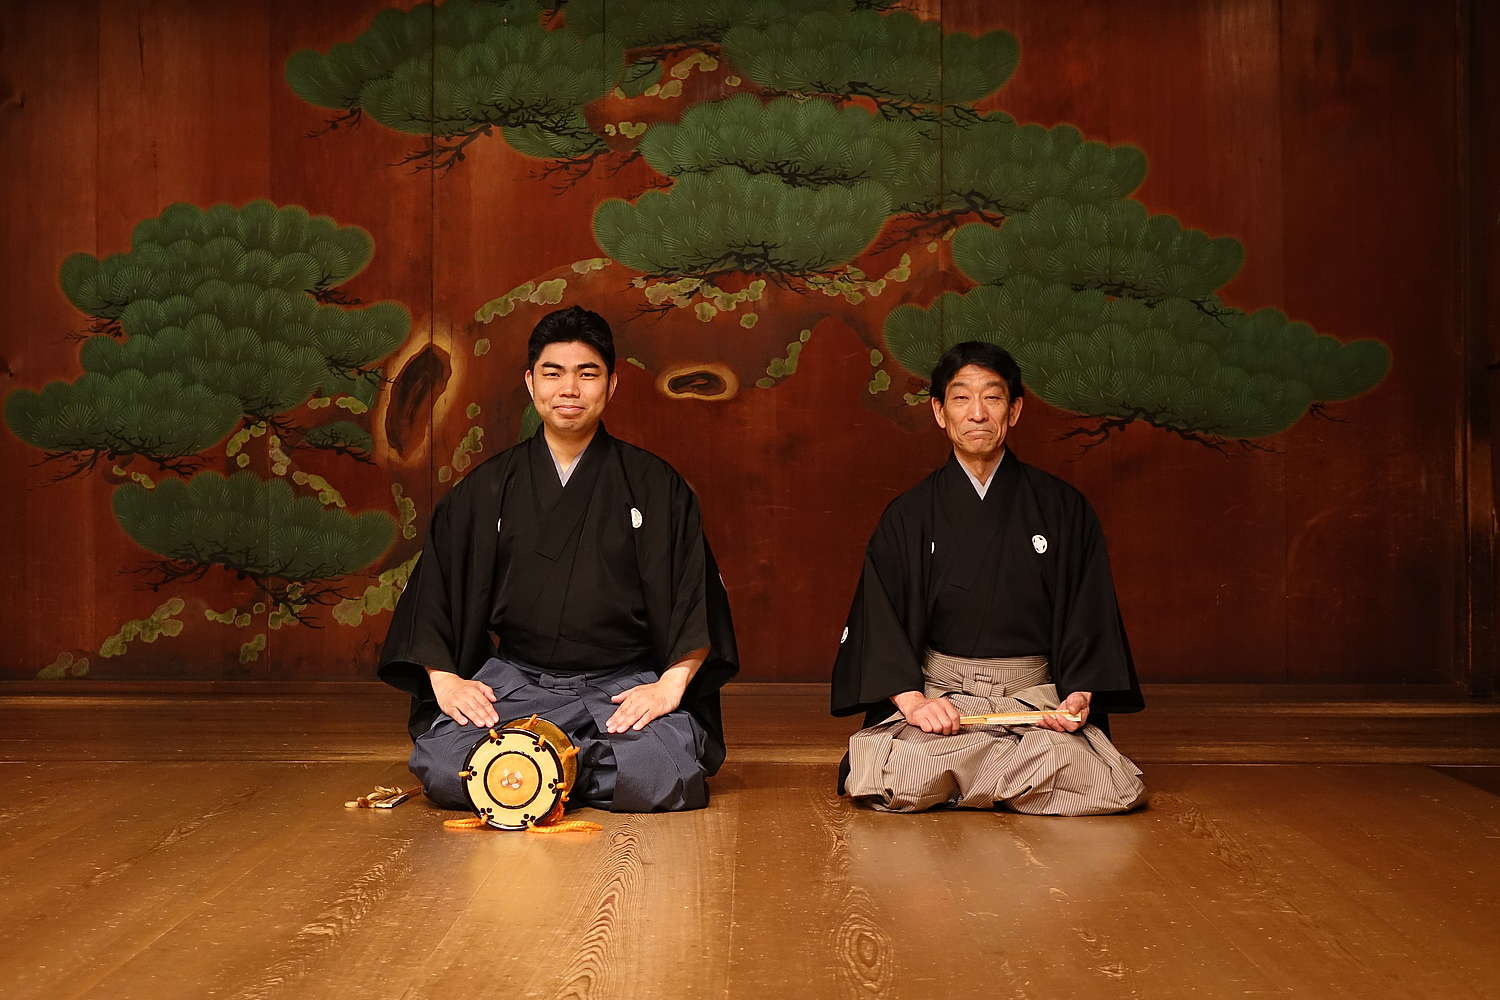 Two Japanese men kneeling onstage in kimonos against a backdrop featuring a large tree